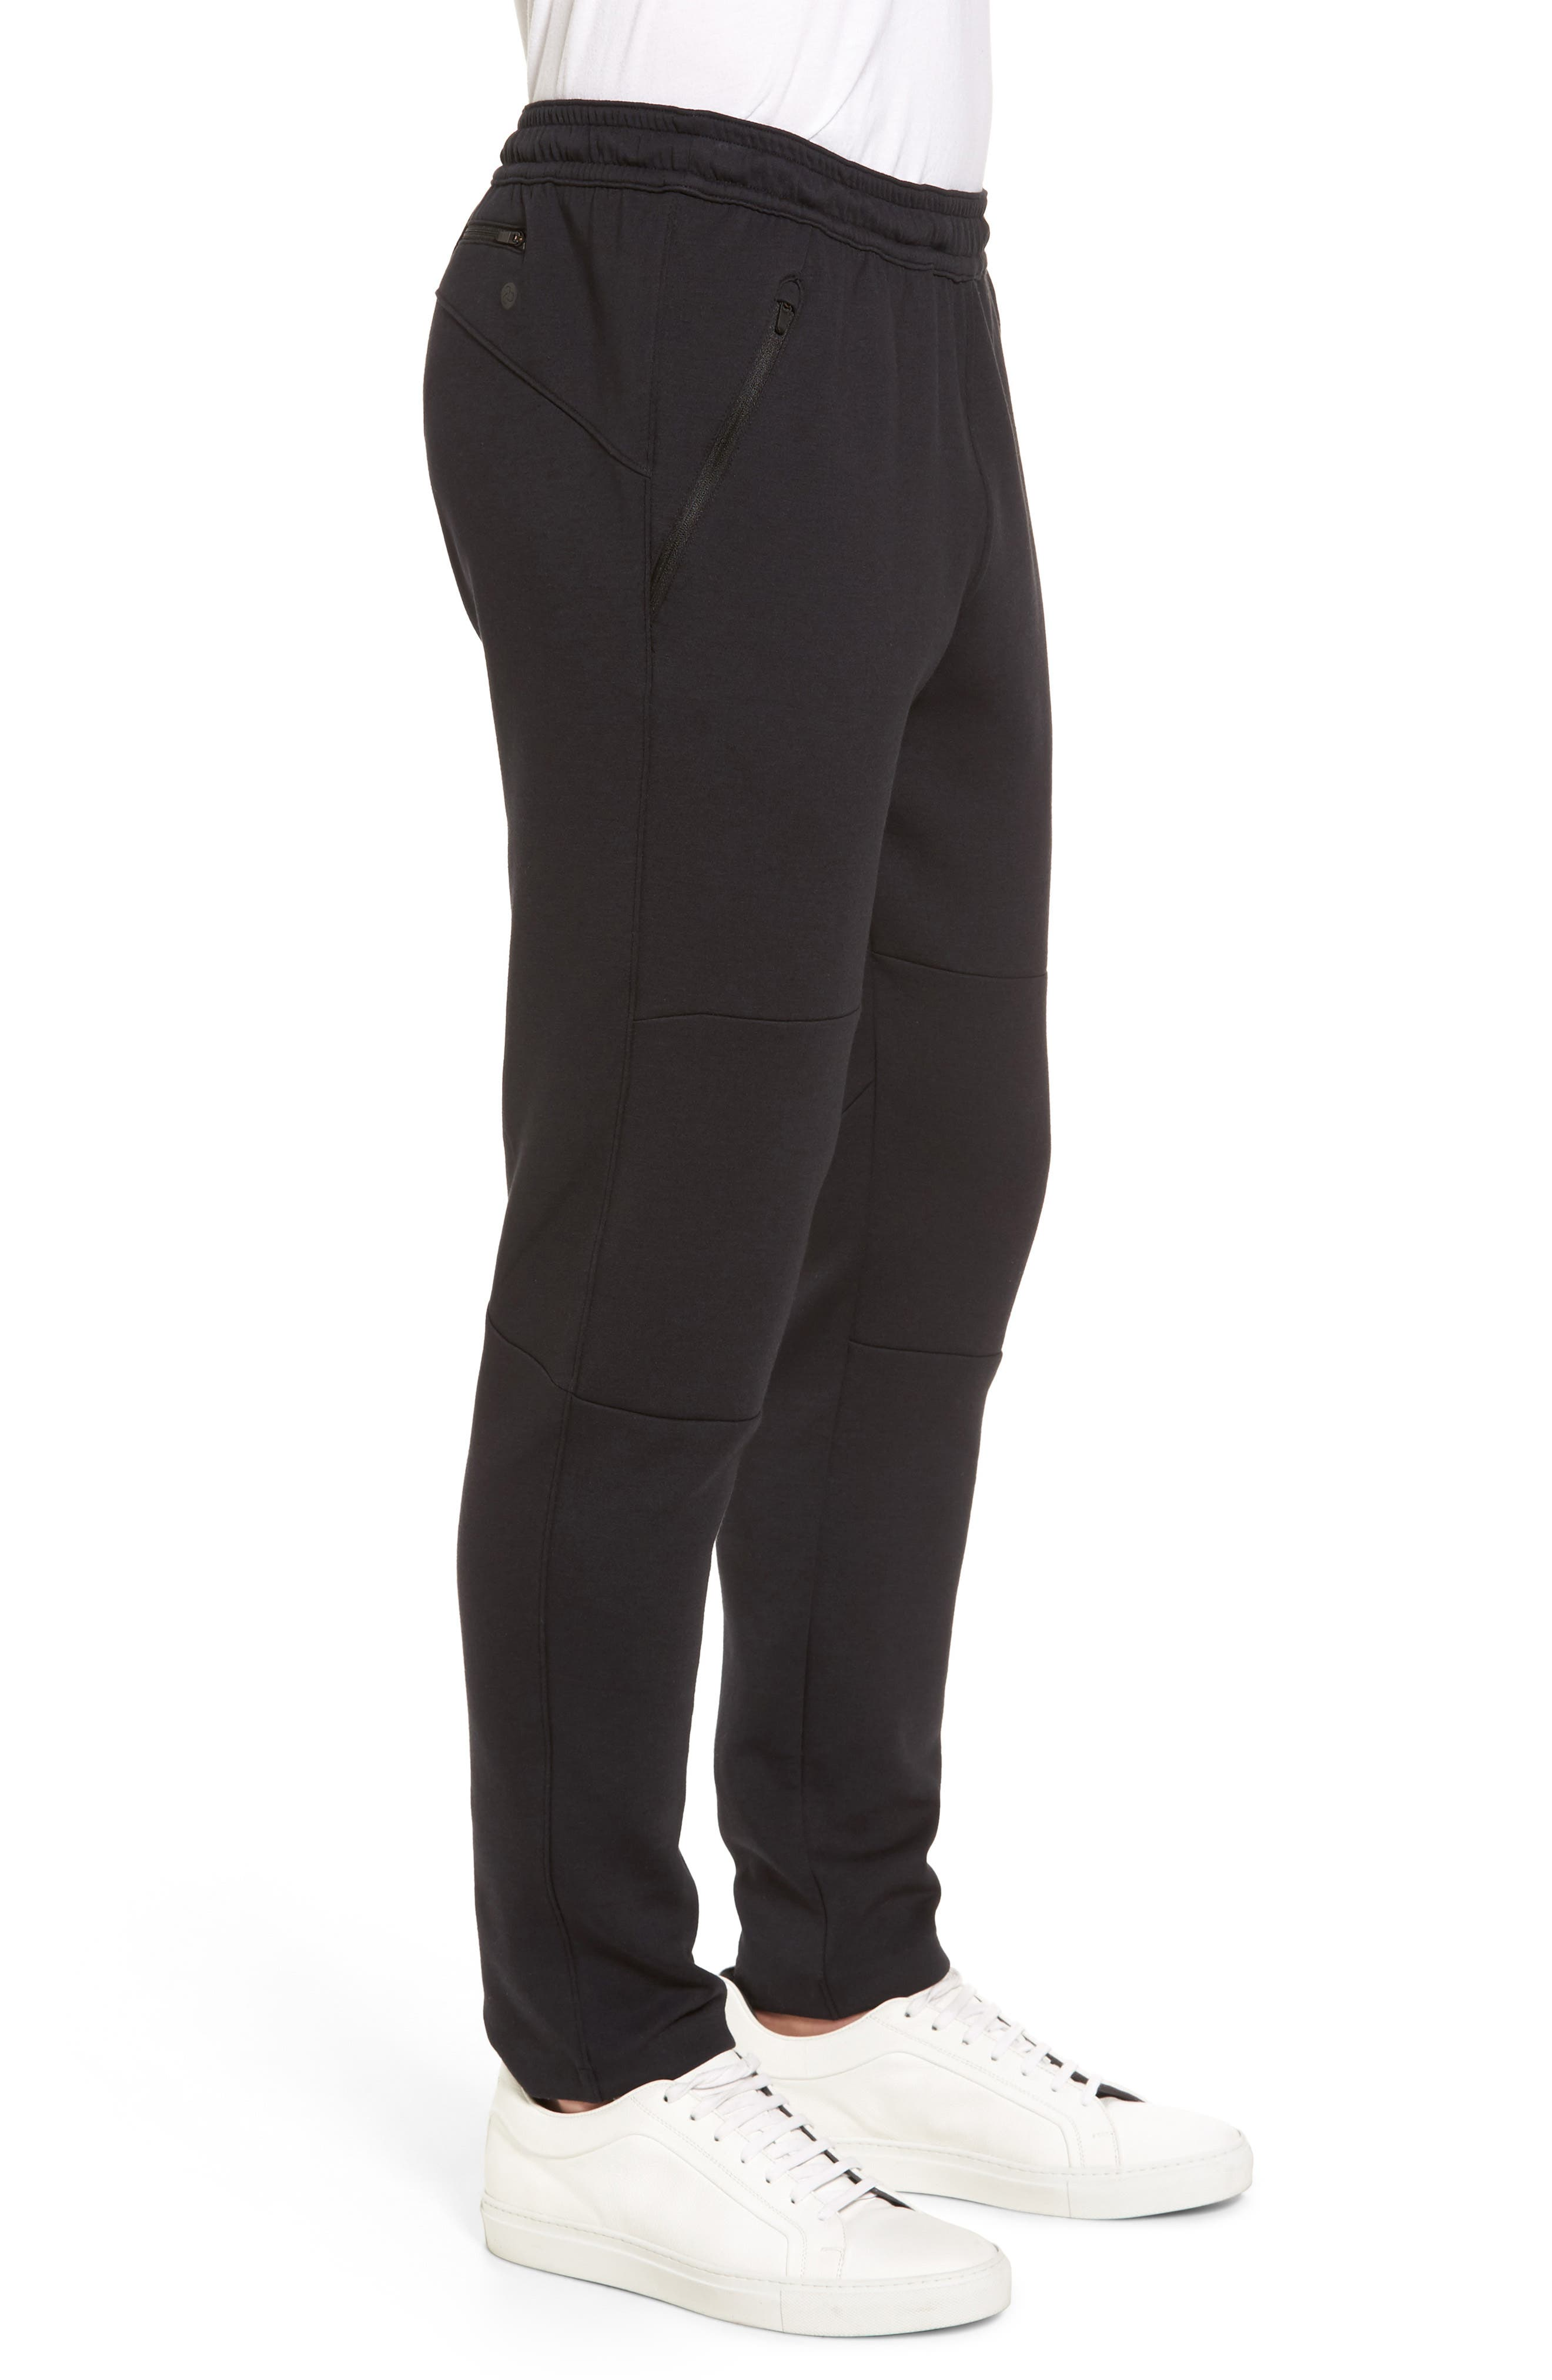 Alternate Image 2  - Zella Tech Interlock Knit Pant